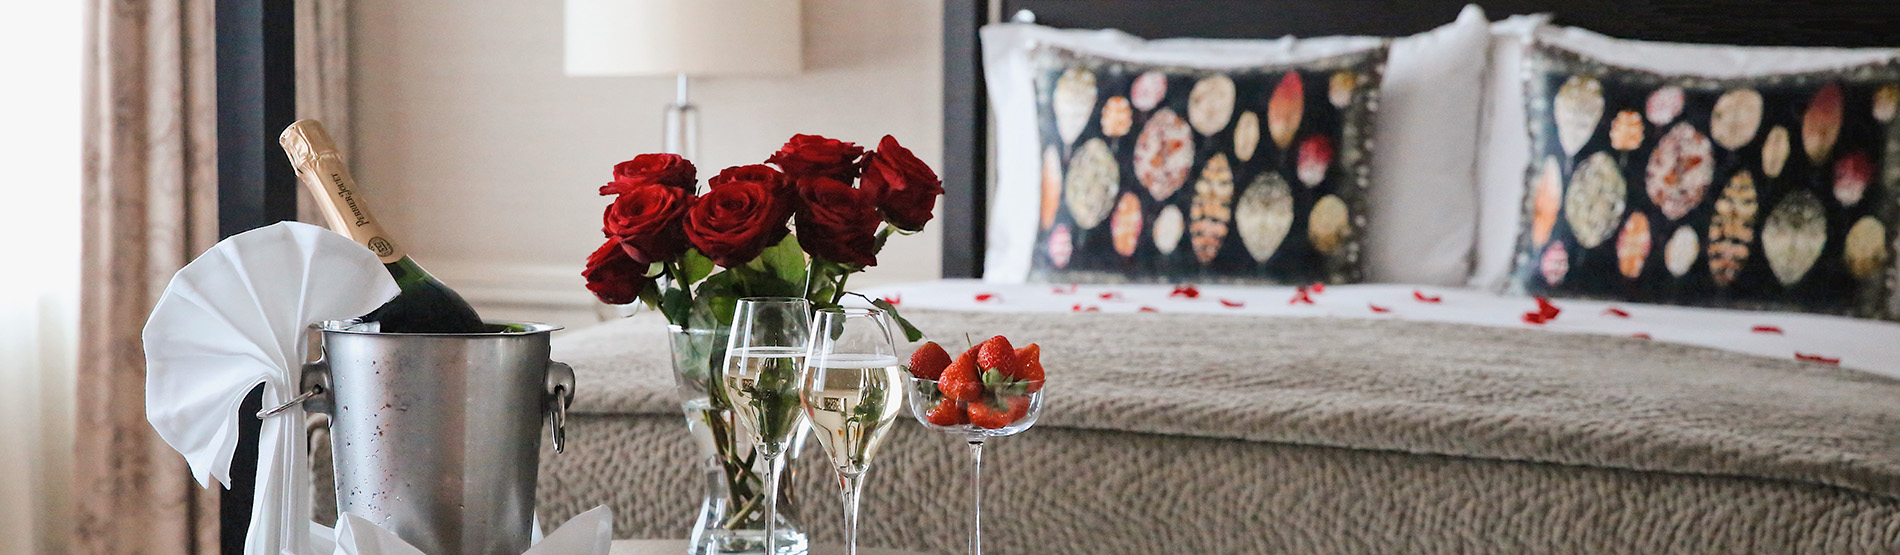 Bedroom with Champagne and red roses